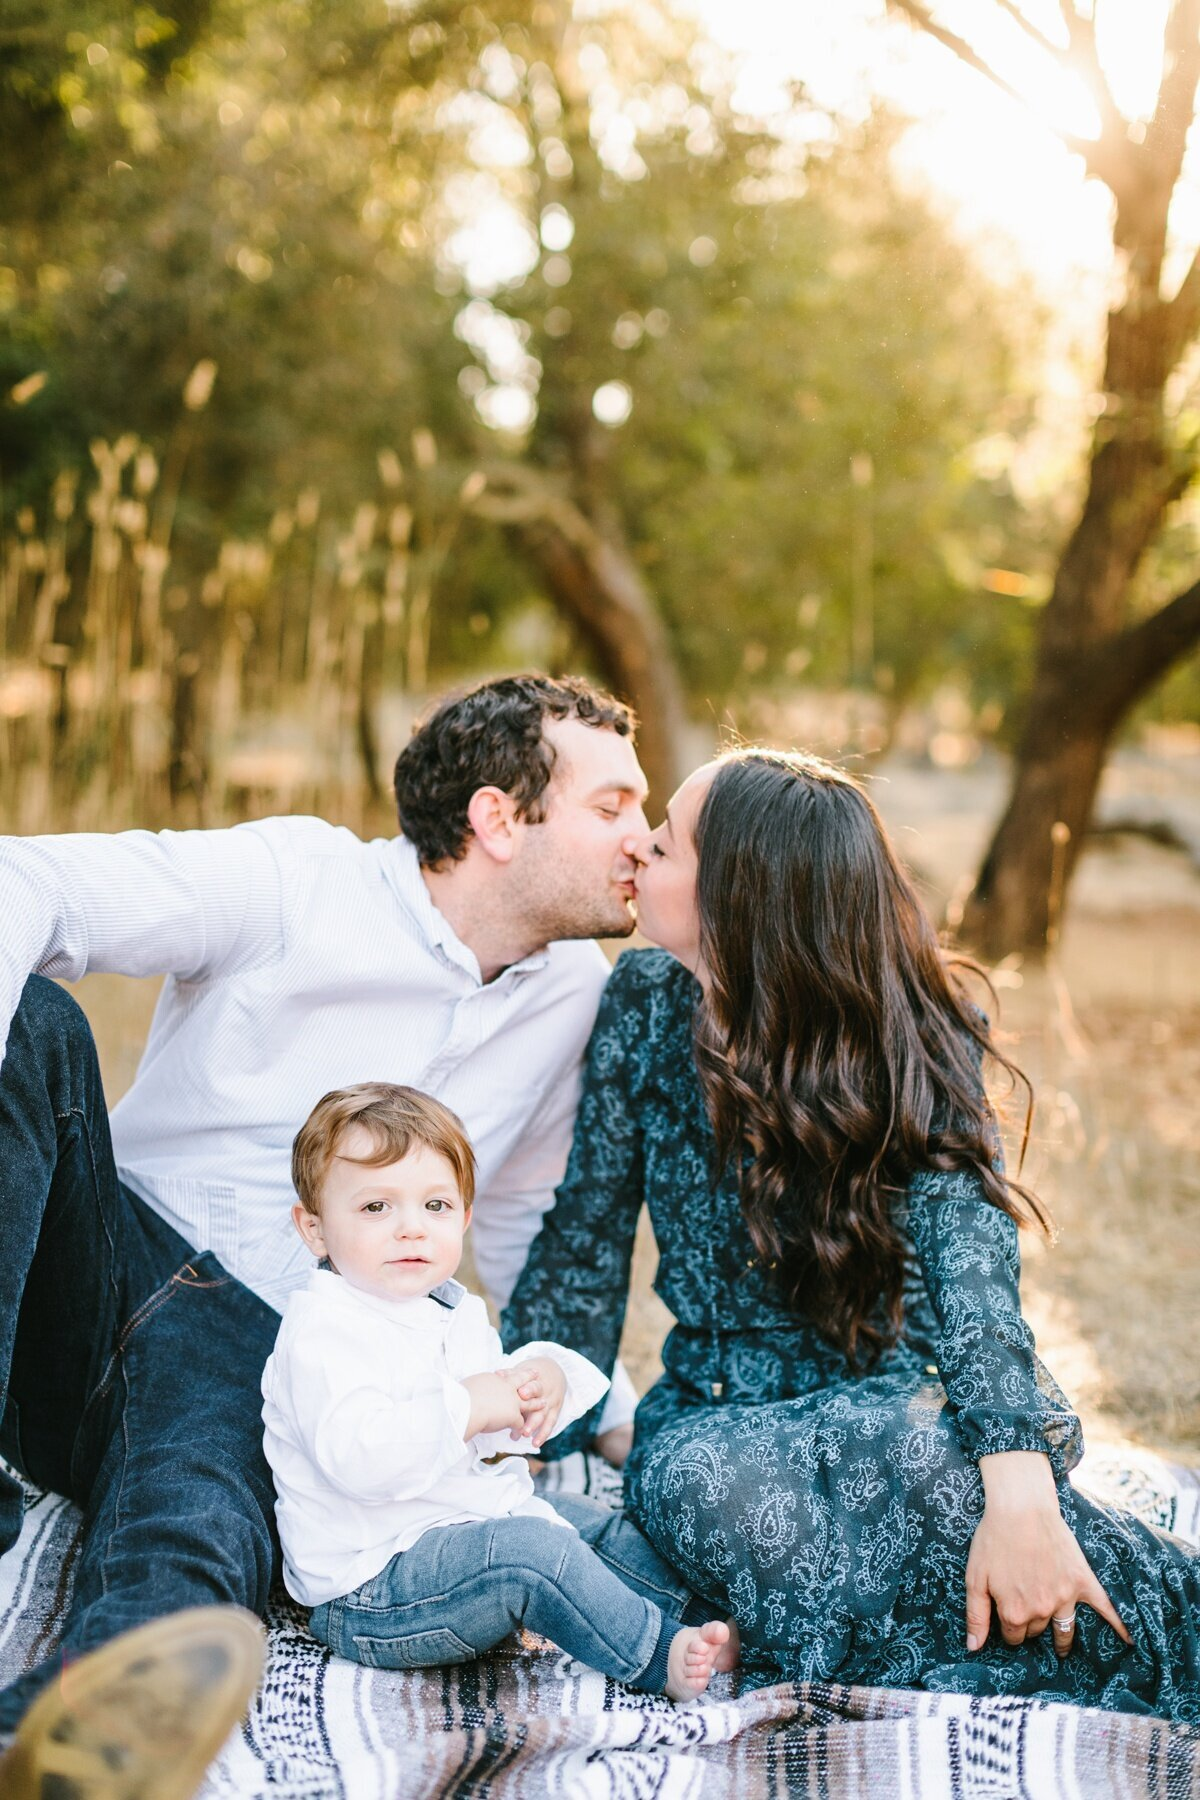 California Family Photography-Texas Family Photographer-Family Photos-Jodee Debes Photography-25